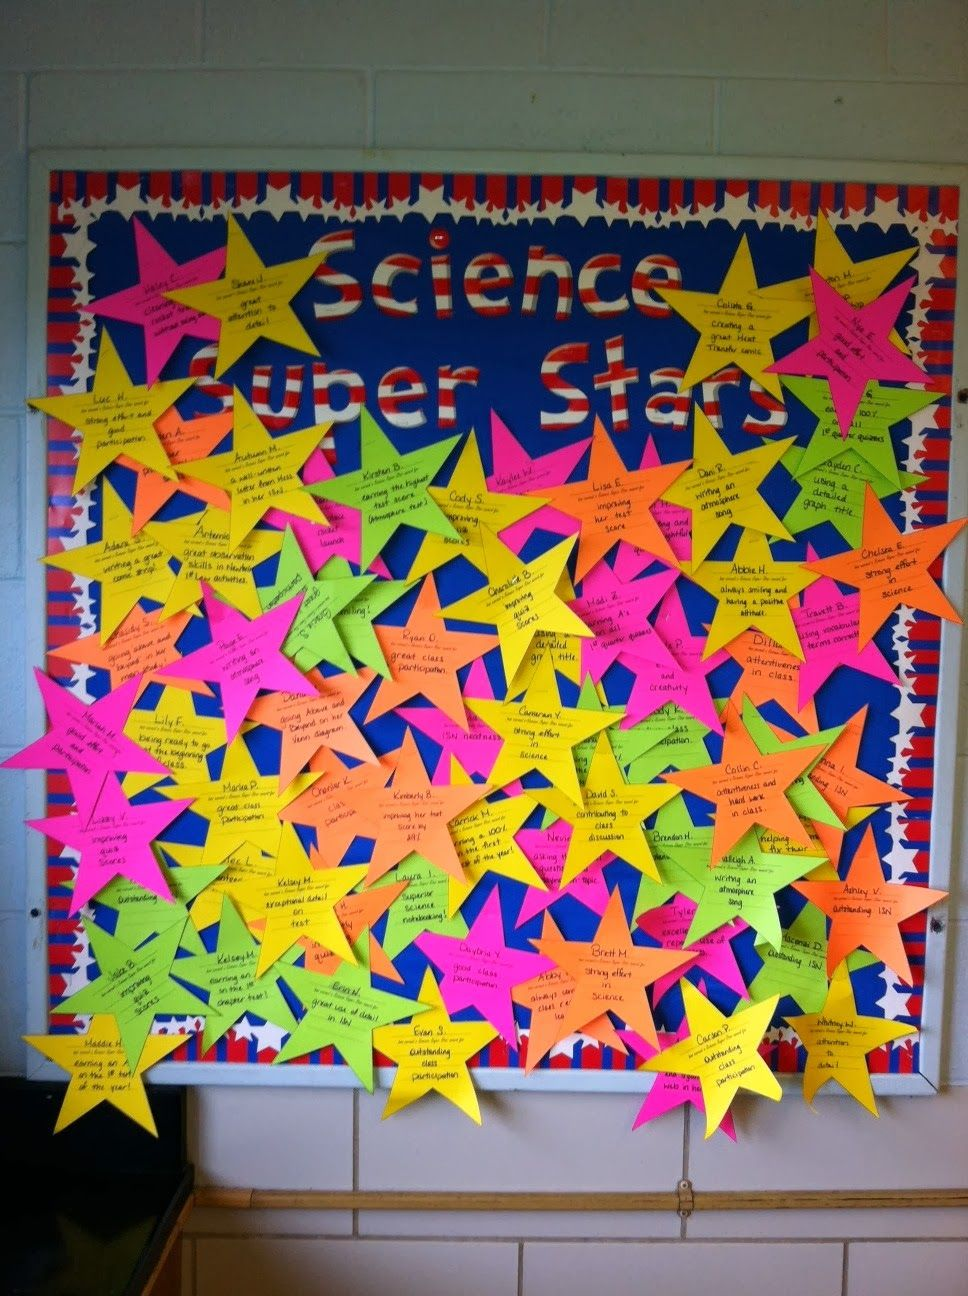 Classroom Incentive Ideas For Middle School : Beyond the goggles science super stars a classroom